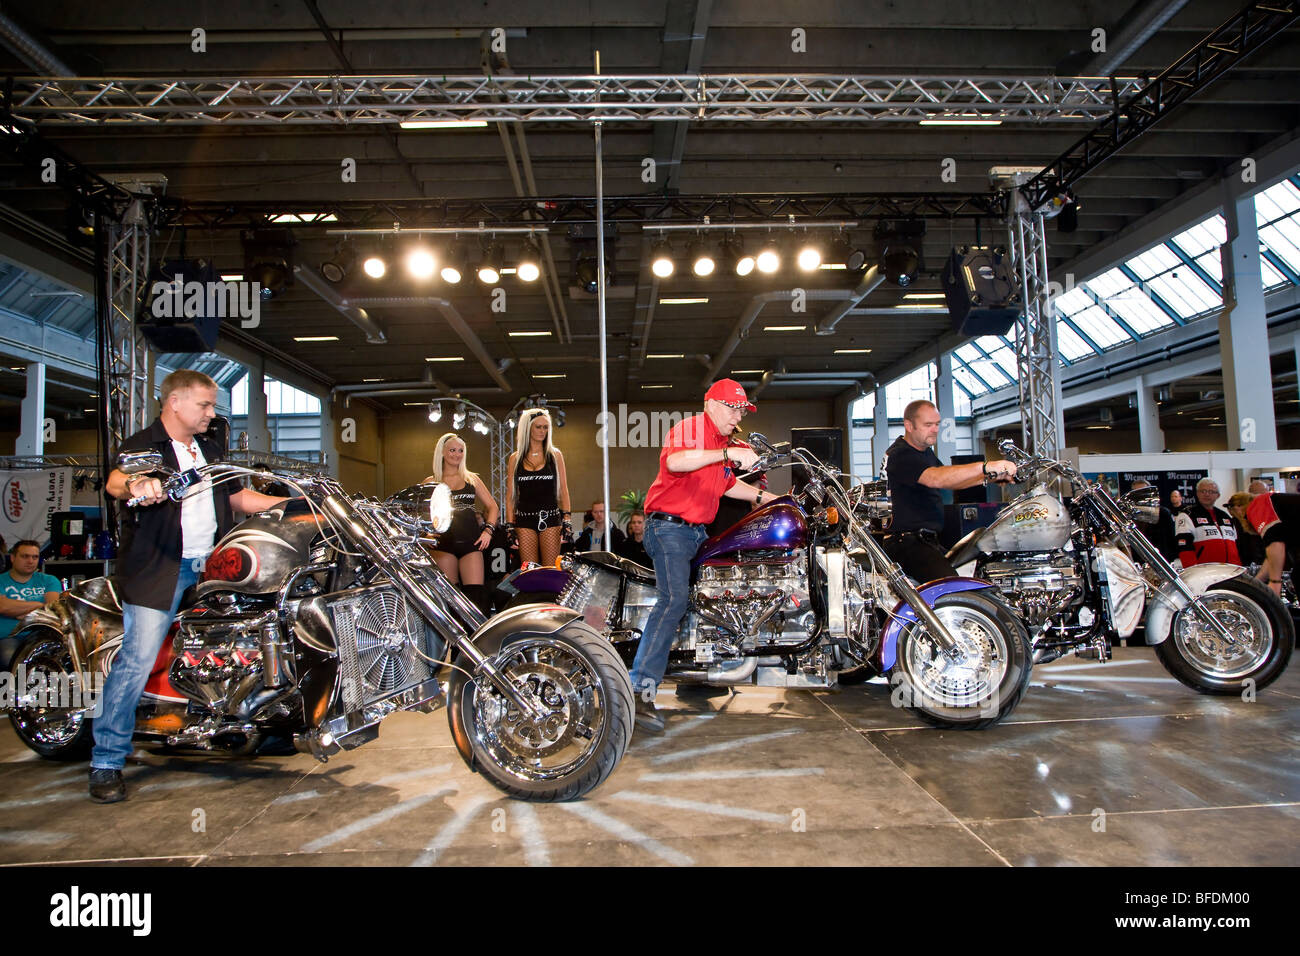 The winners in the Best Cruiser category at Scandinavian Custom Show in Bella Centret Copenhagen - Stock Image